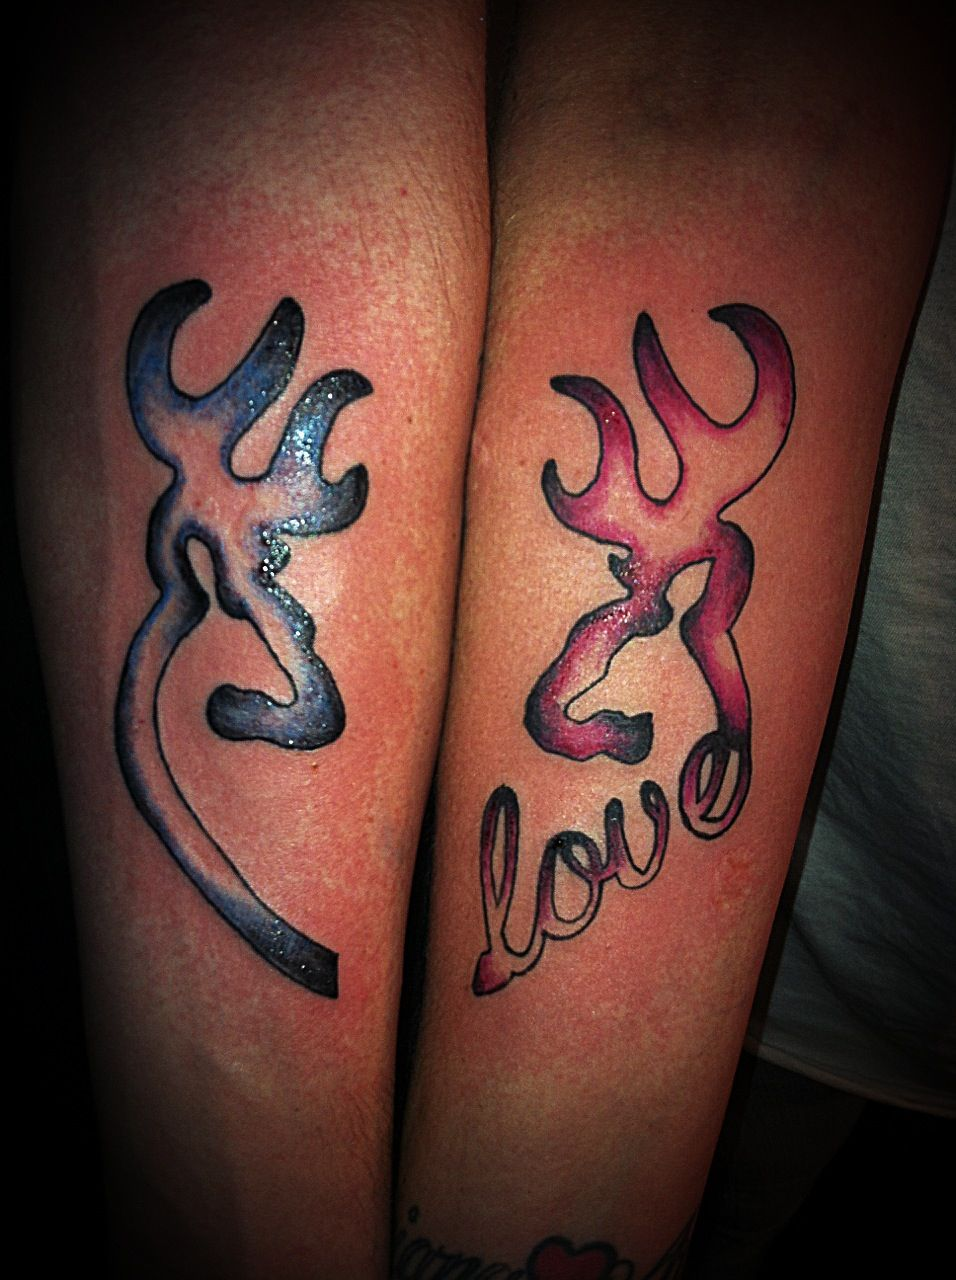 25 couple tattoos ideas gallery tatto browning and tattoo for Tattoos for her